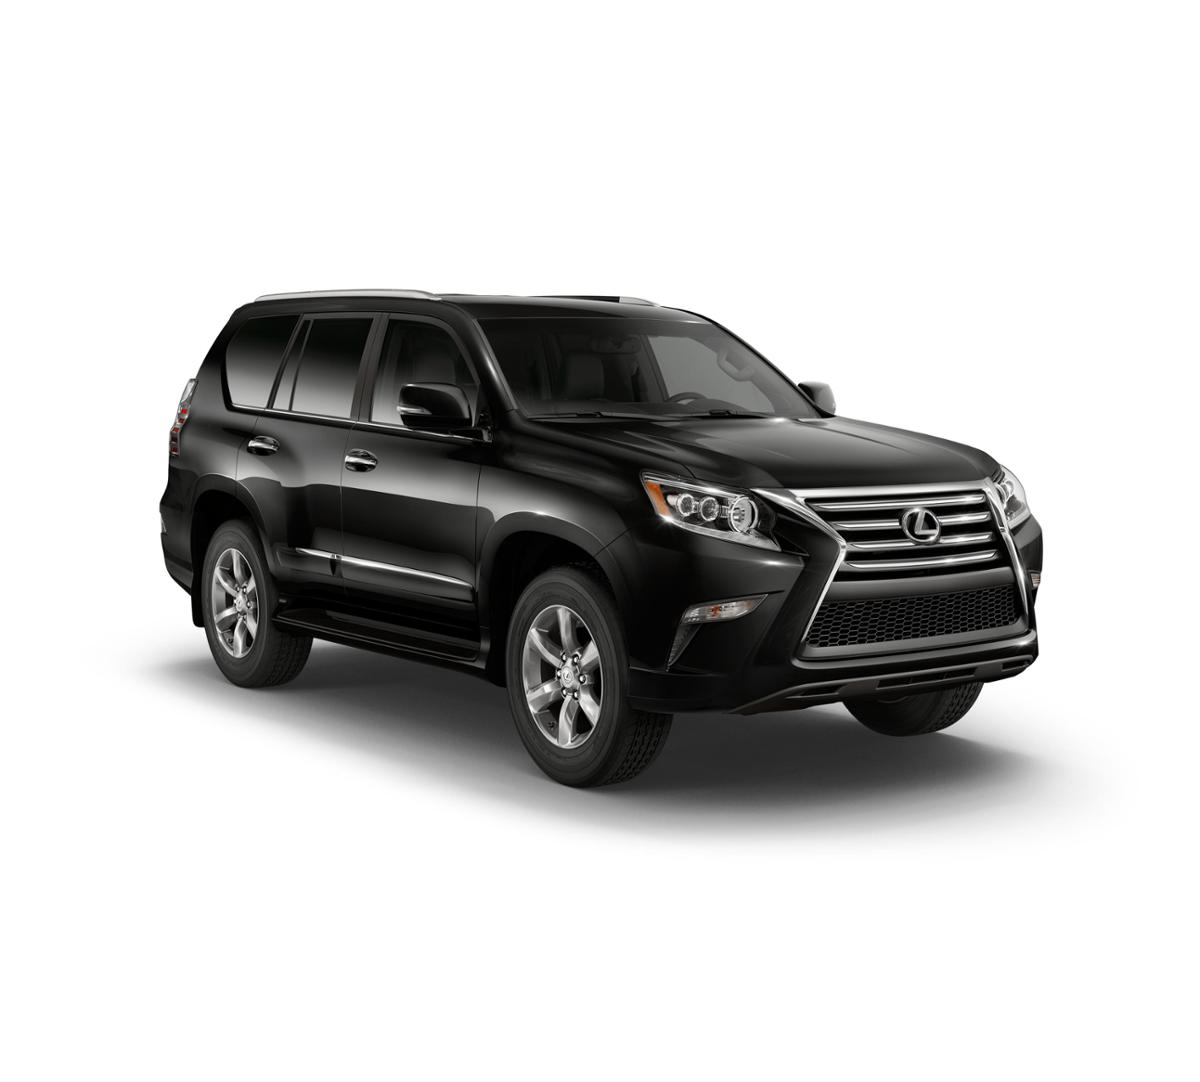 2018 Lexus GX 460 Vehicle Photo in Mission Viejo, CA 92692